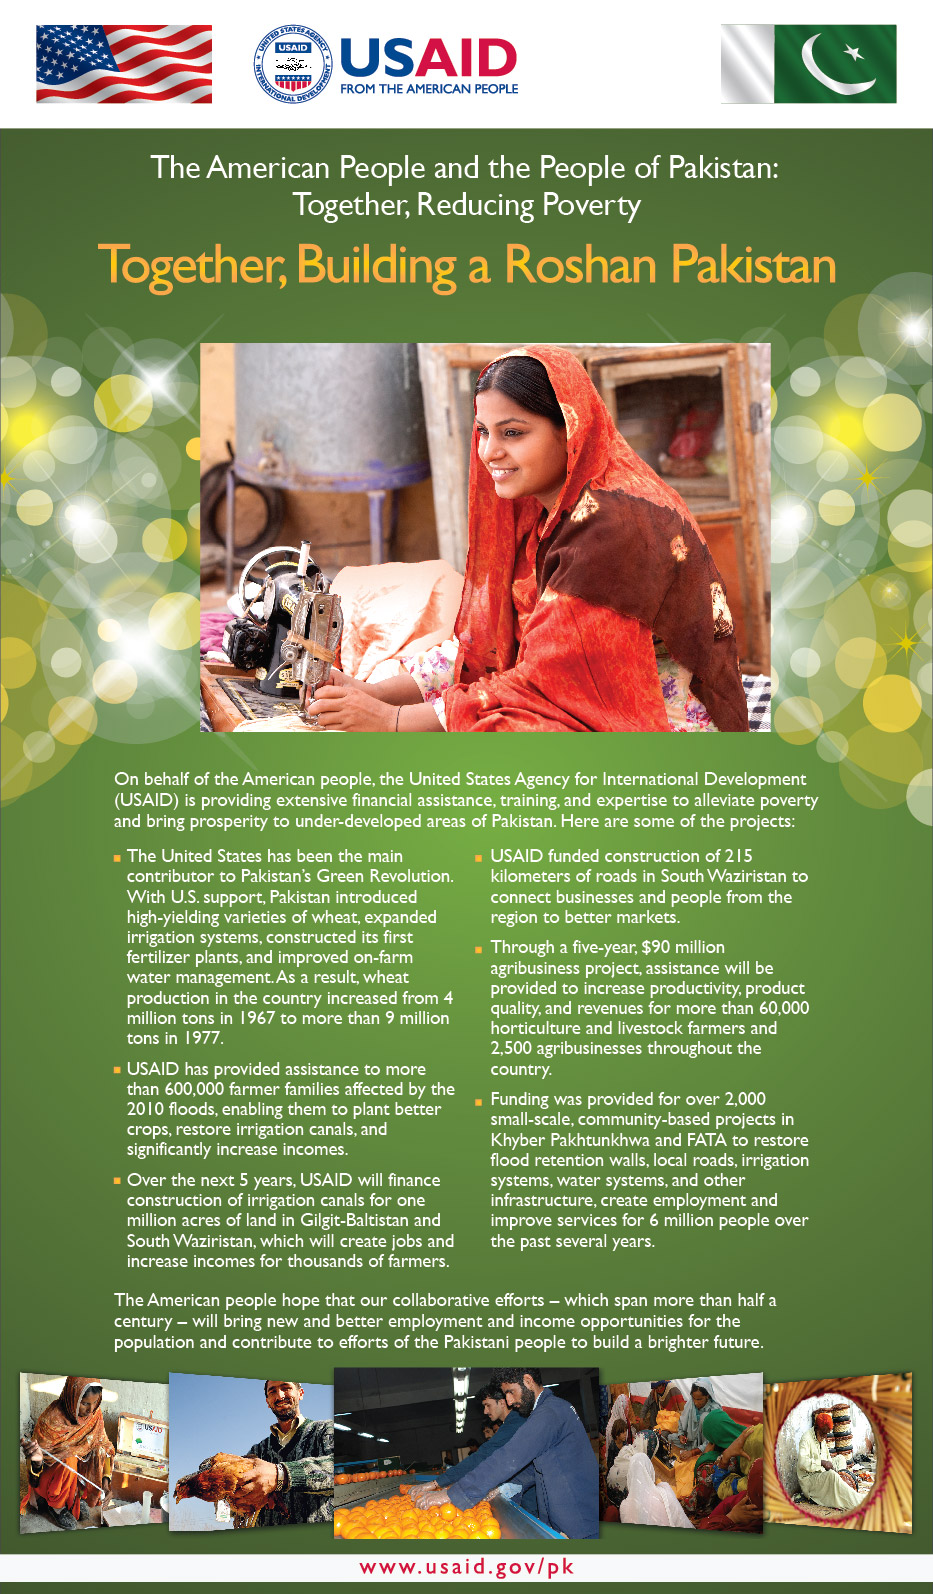 Together, Reducing Poverty in Pakistan